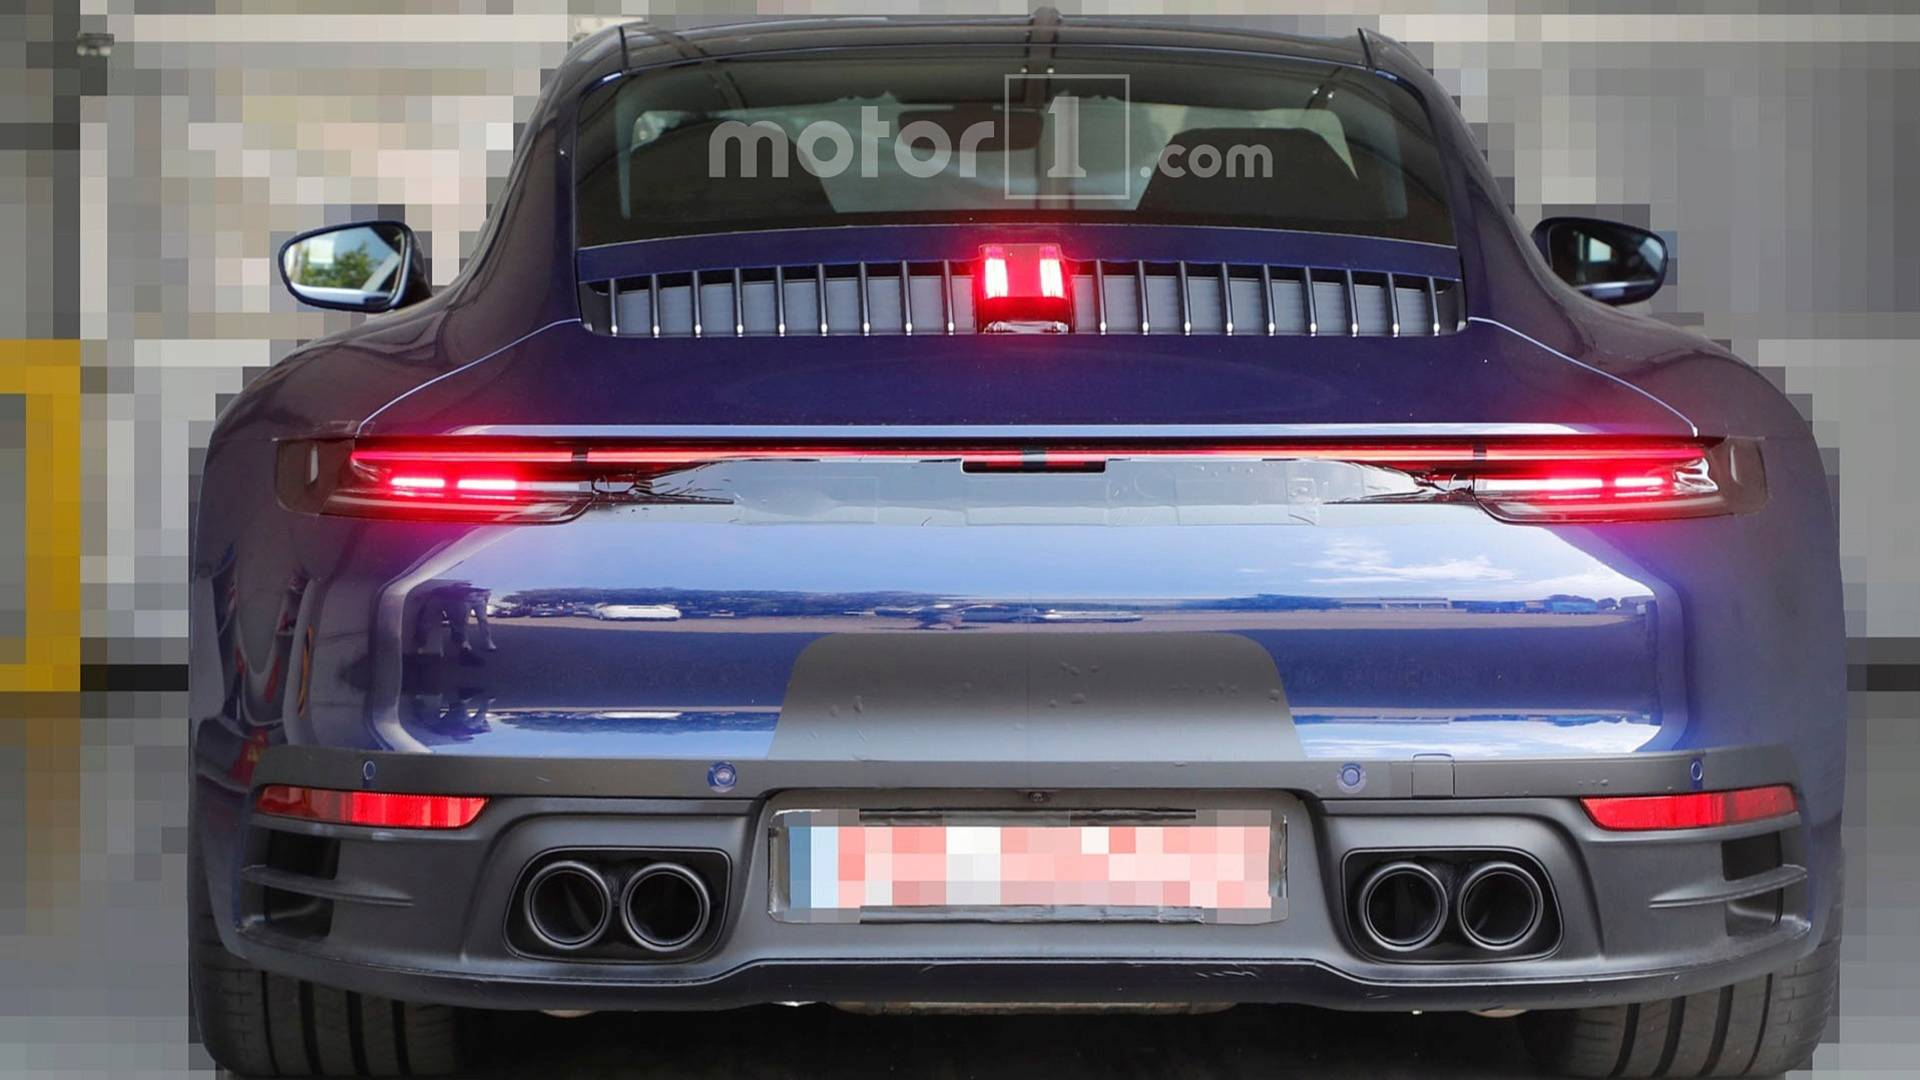 FormaCar: VIDEO: New Porsche 911 spotted on the road